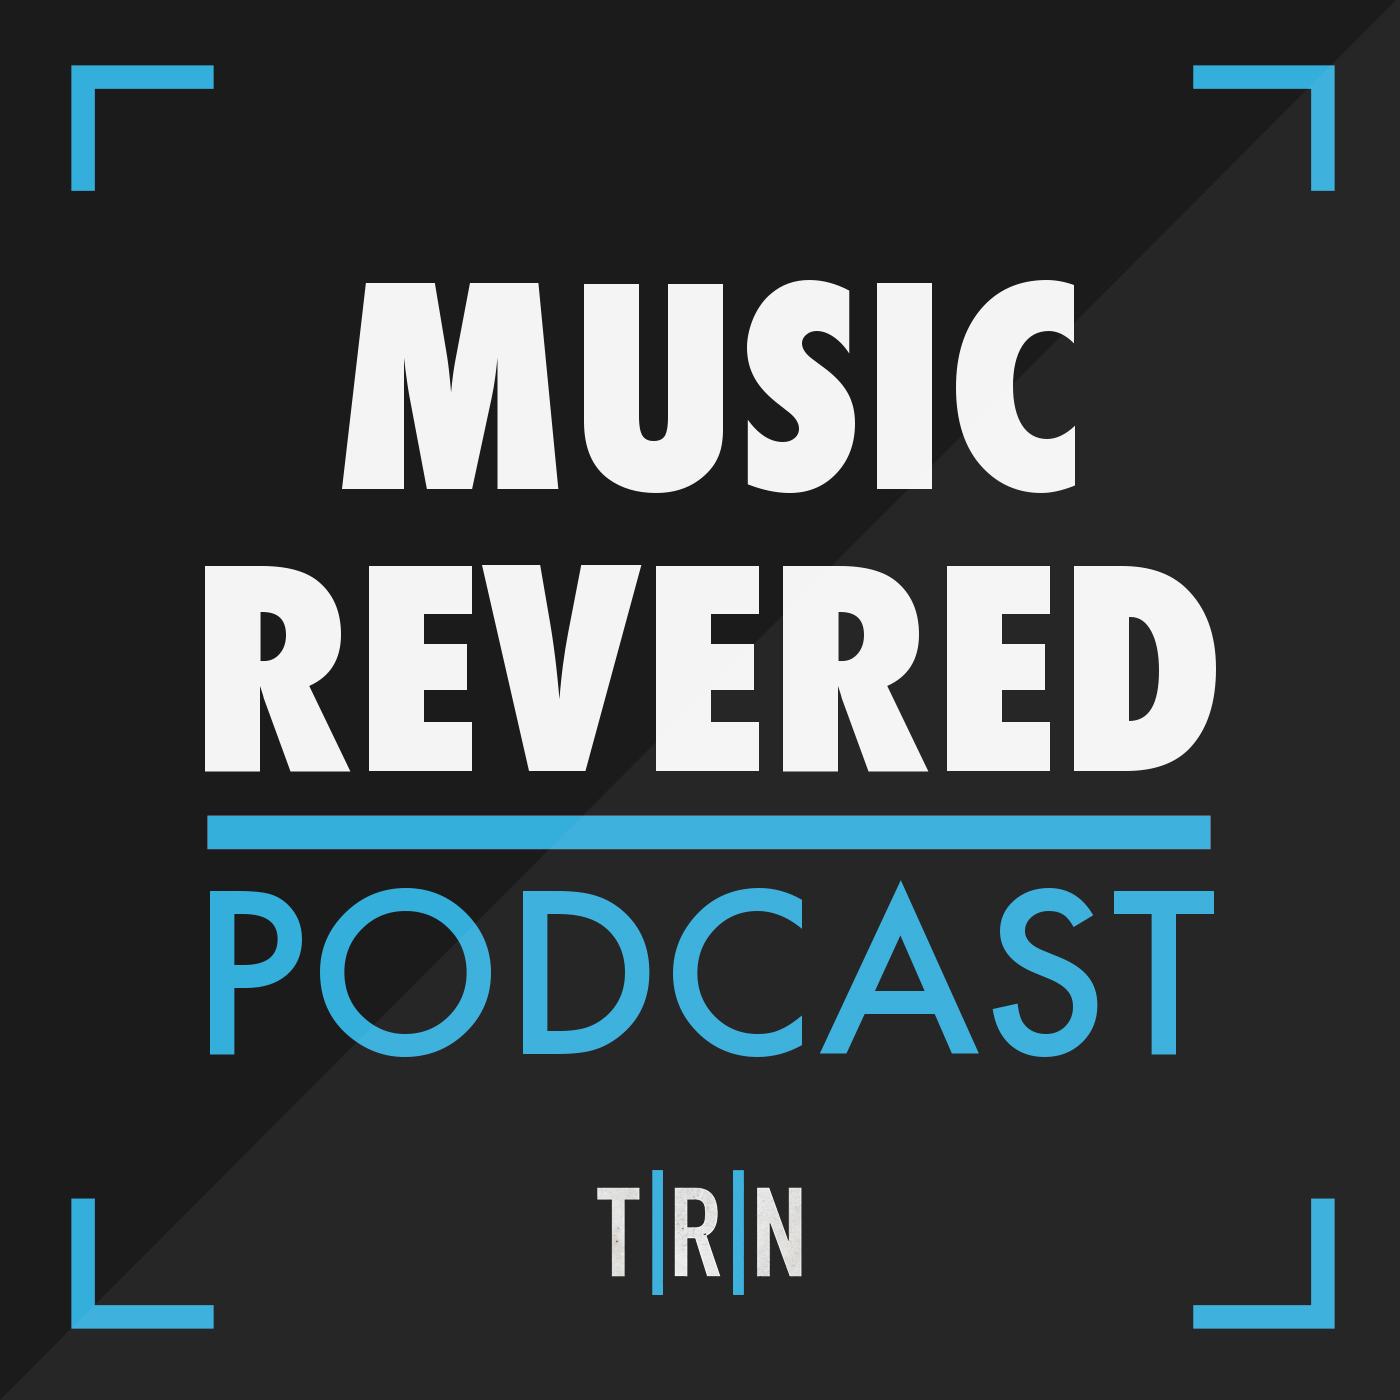 Music Revered Podcast - The bi-weekly Music Revered Podcast features interviews with music industry professionals.• Producer and Host• Responsible for maintaining the company website.• Managed the company's social media presence• Scheduled guest interviews• Recorded/edited interview sessionsMore information